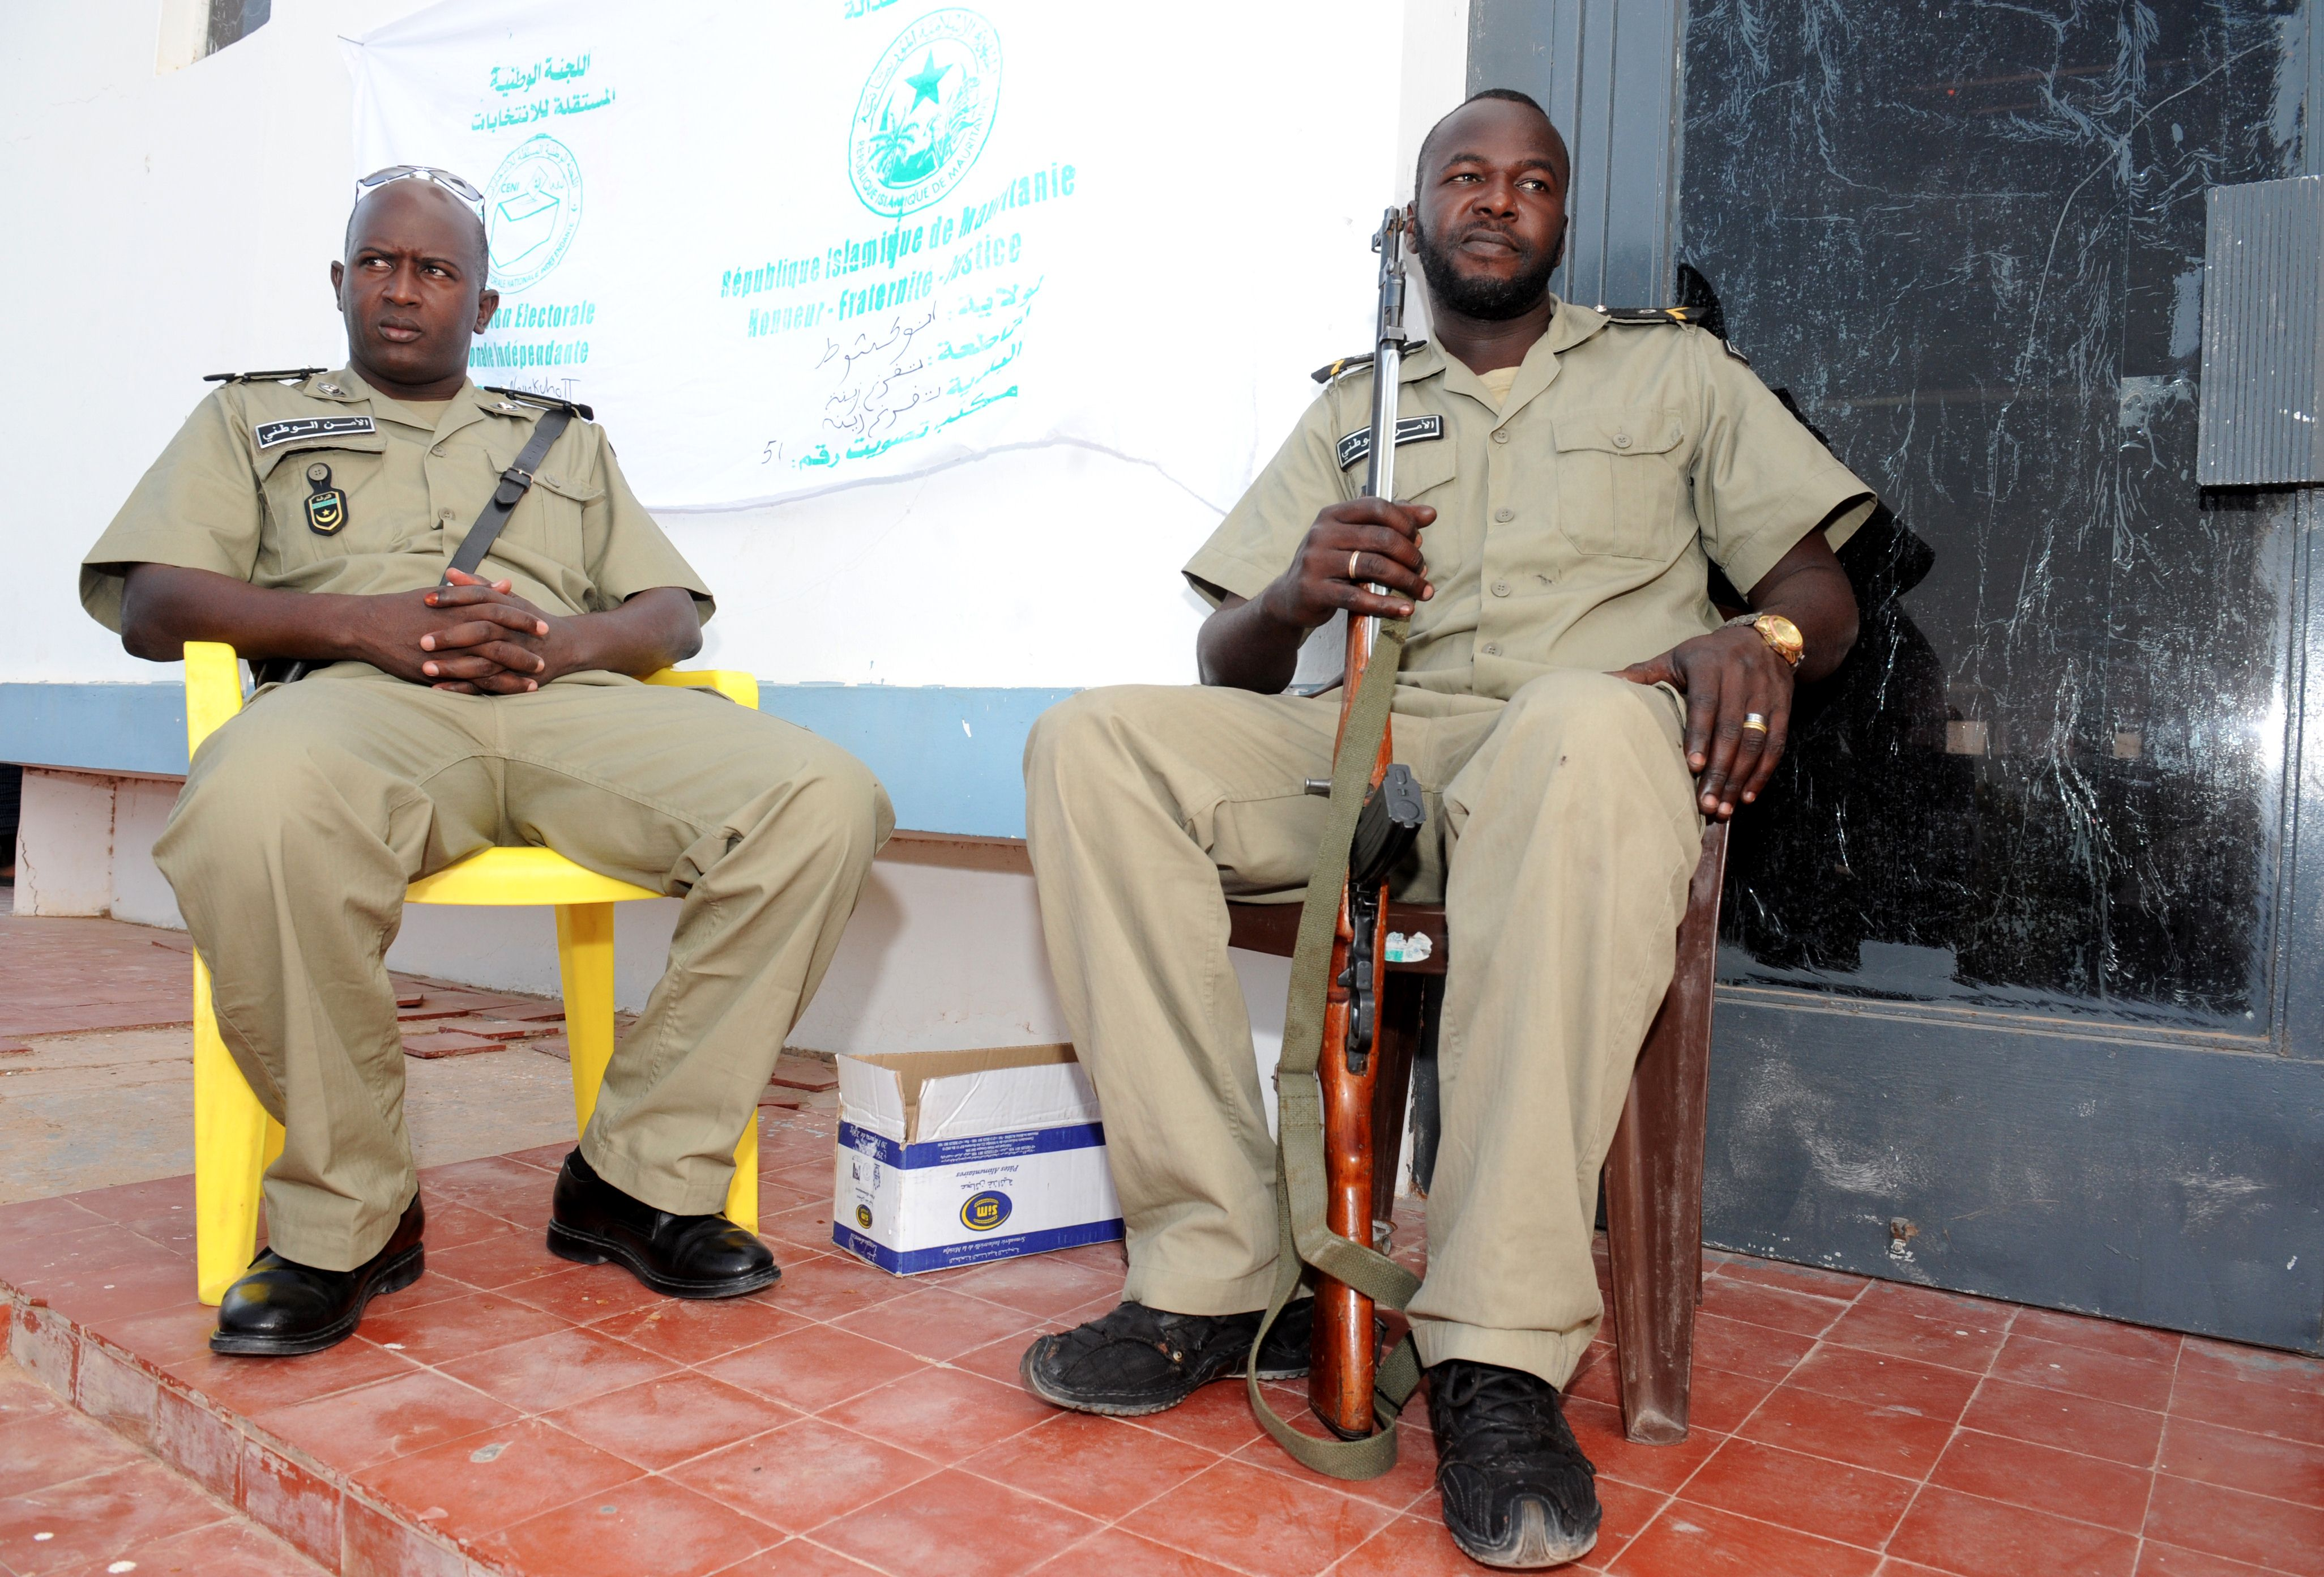 Mauritanian police officers stand guard outside a polling station in Nouakchott, on June 21, 2014, during the presidential elections. The Islamic Republic of Mauritania is led by Mohamed Ould Abdel Aziz, an ex-general who led a 2008 coup and won election a year later. He is tipped to win Saturday's presidential poll as leading opposition groups have vowed to boycott the ballot.  (AFP PHOTO / SEYLLOU)